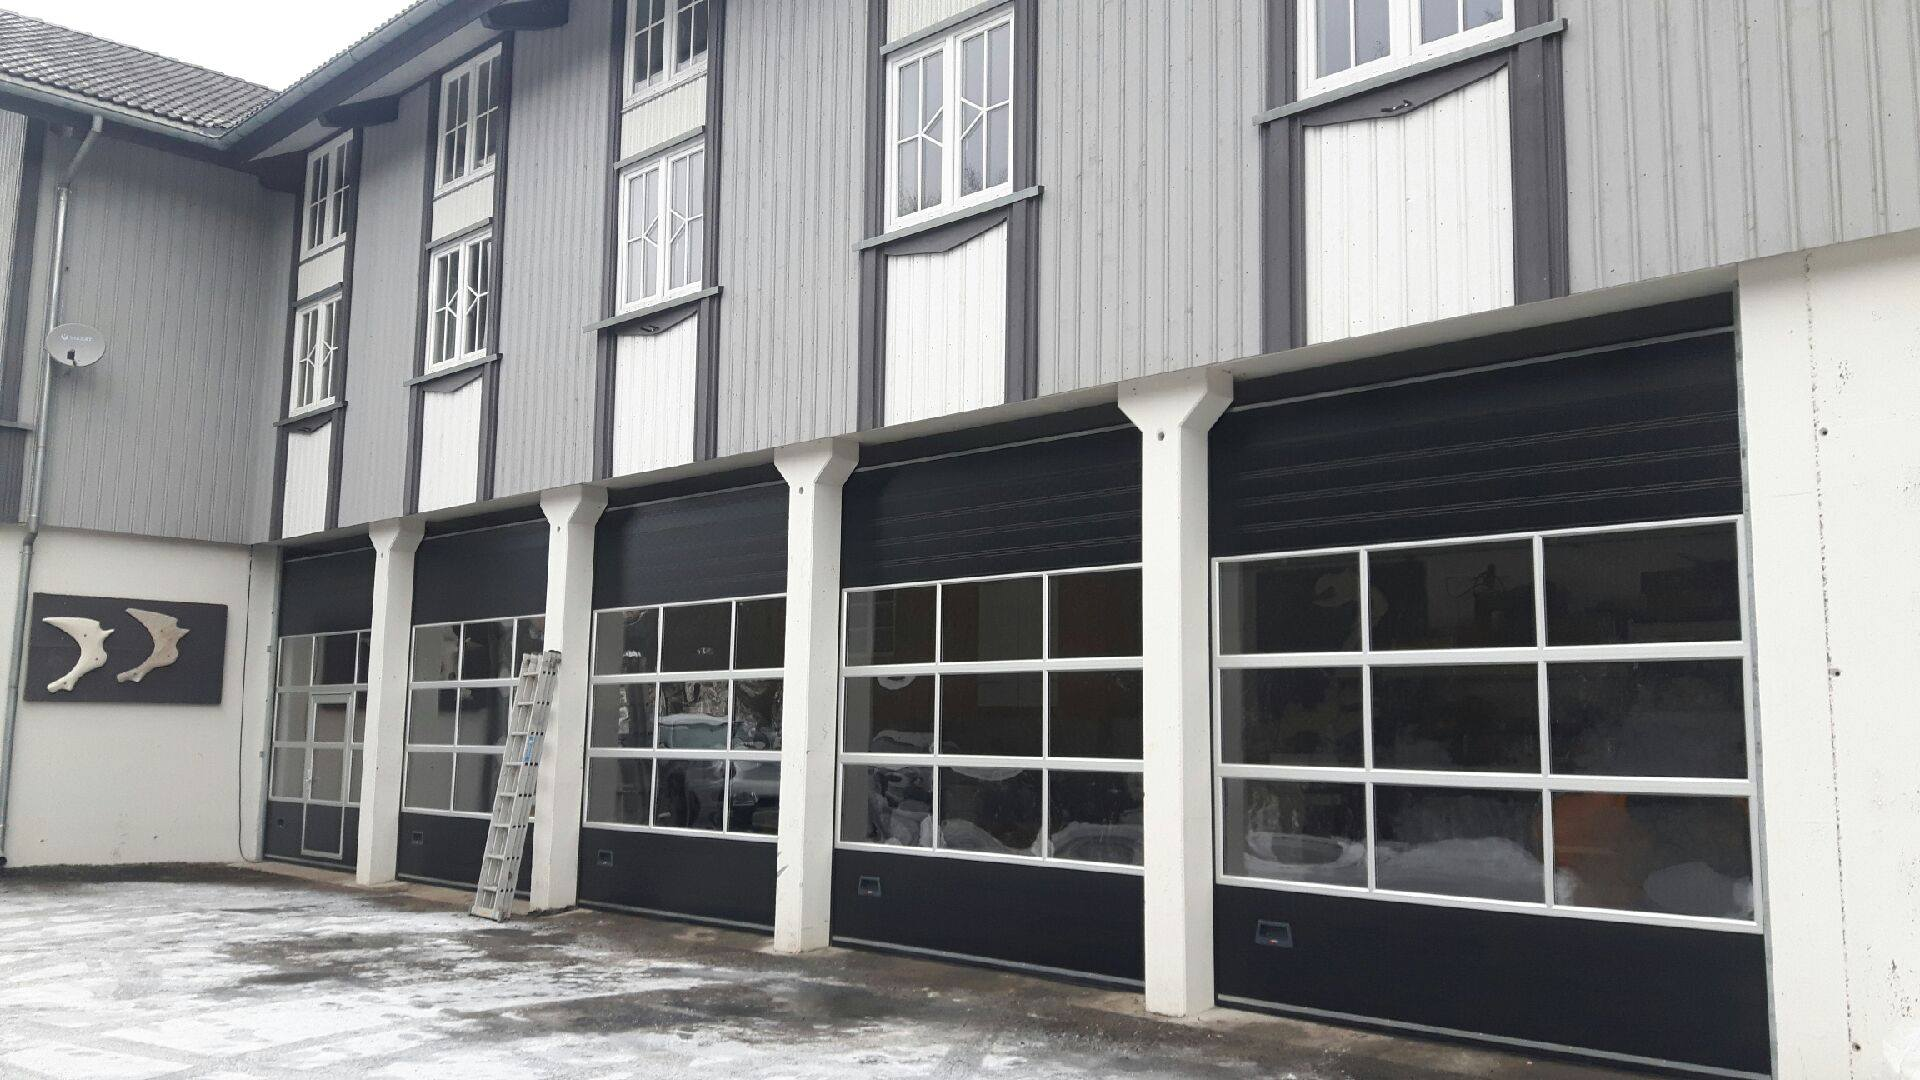 Black 9000M Sectional Industrial Doors With Windows